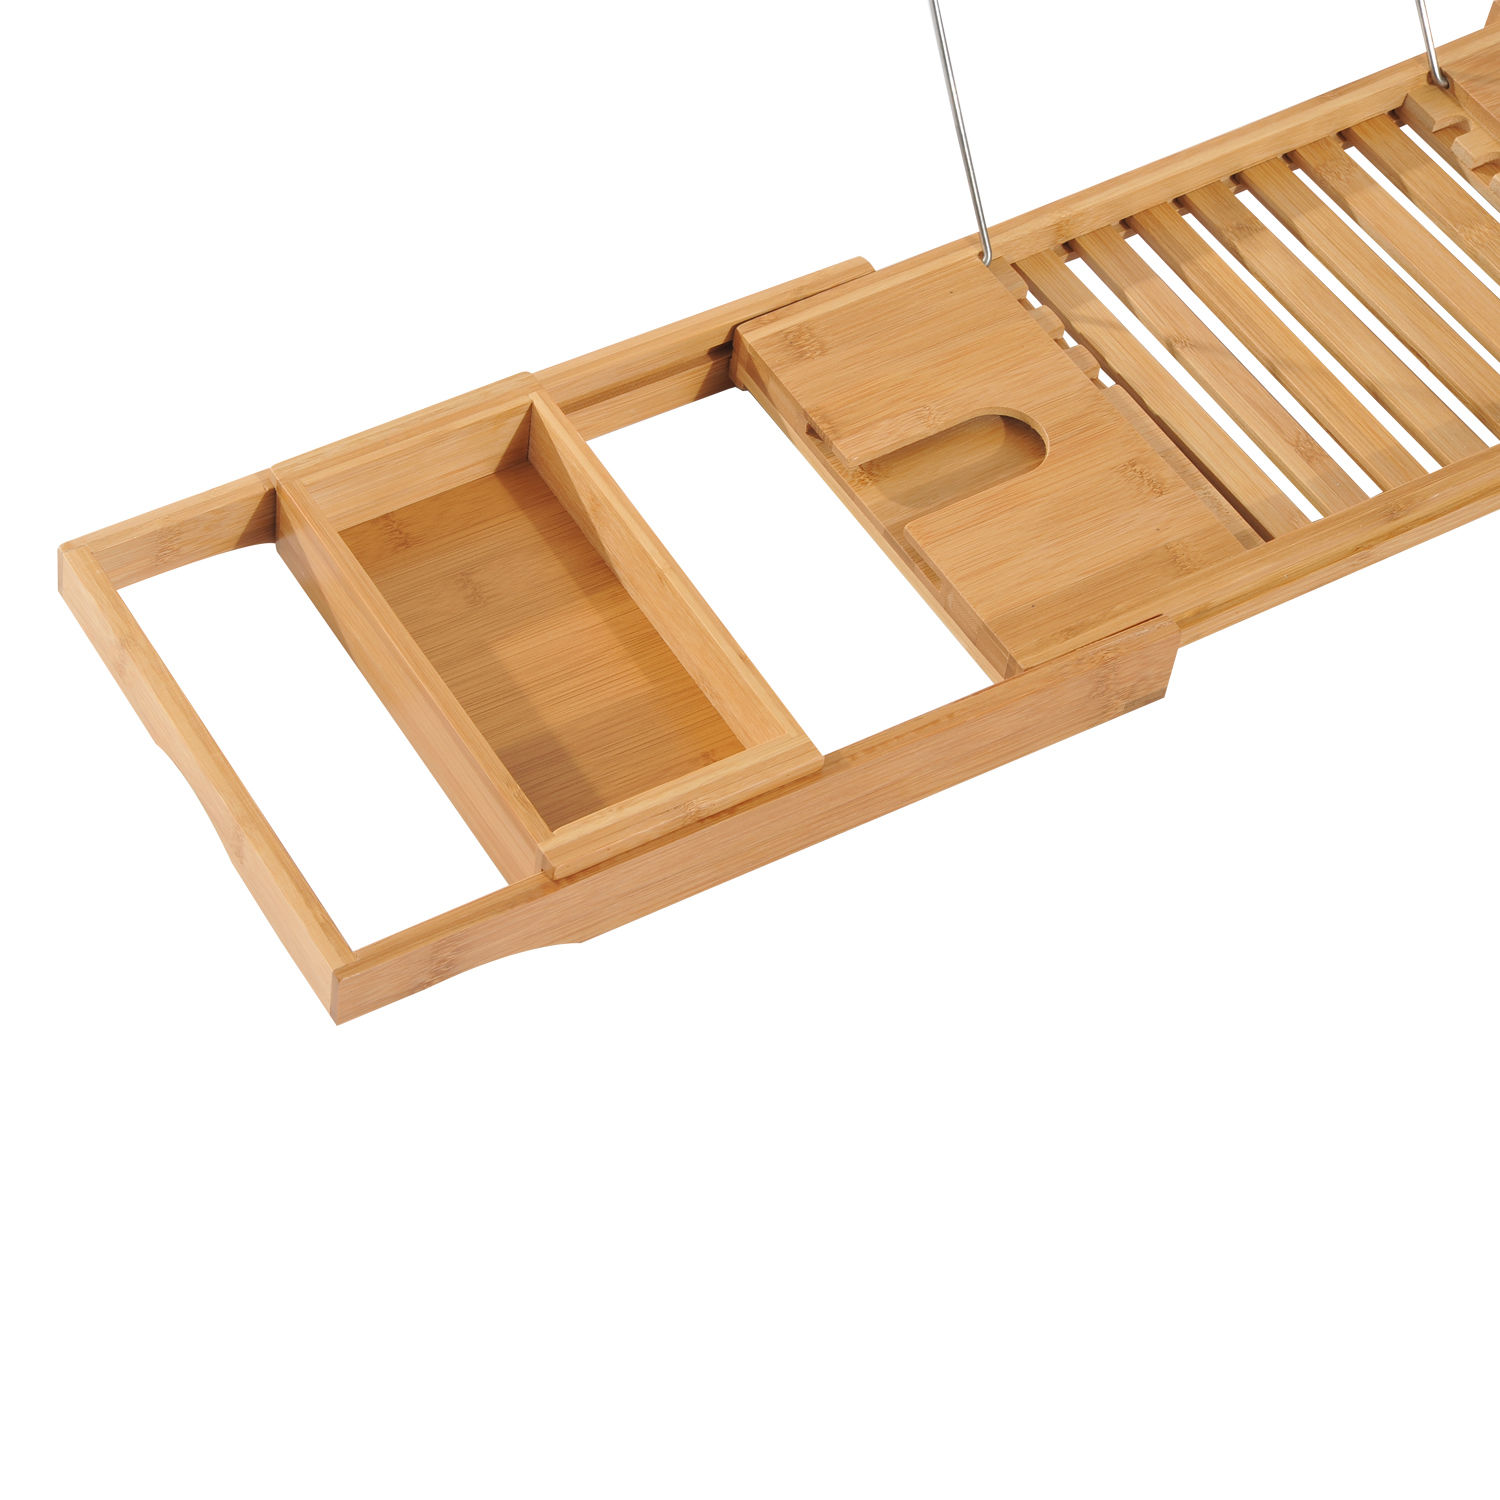 Bath Rack Bathroom Tray Bamboo Wooden Bathtub Shelf Wine Holder | eBay